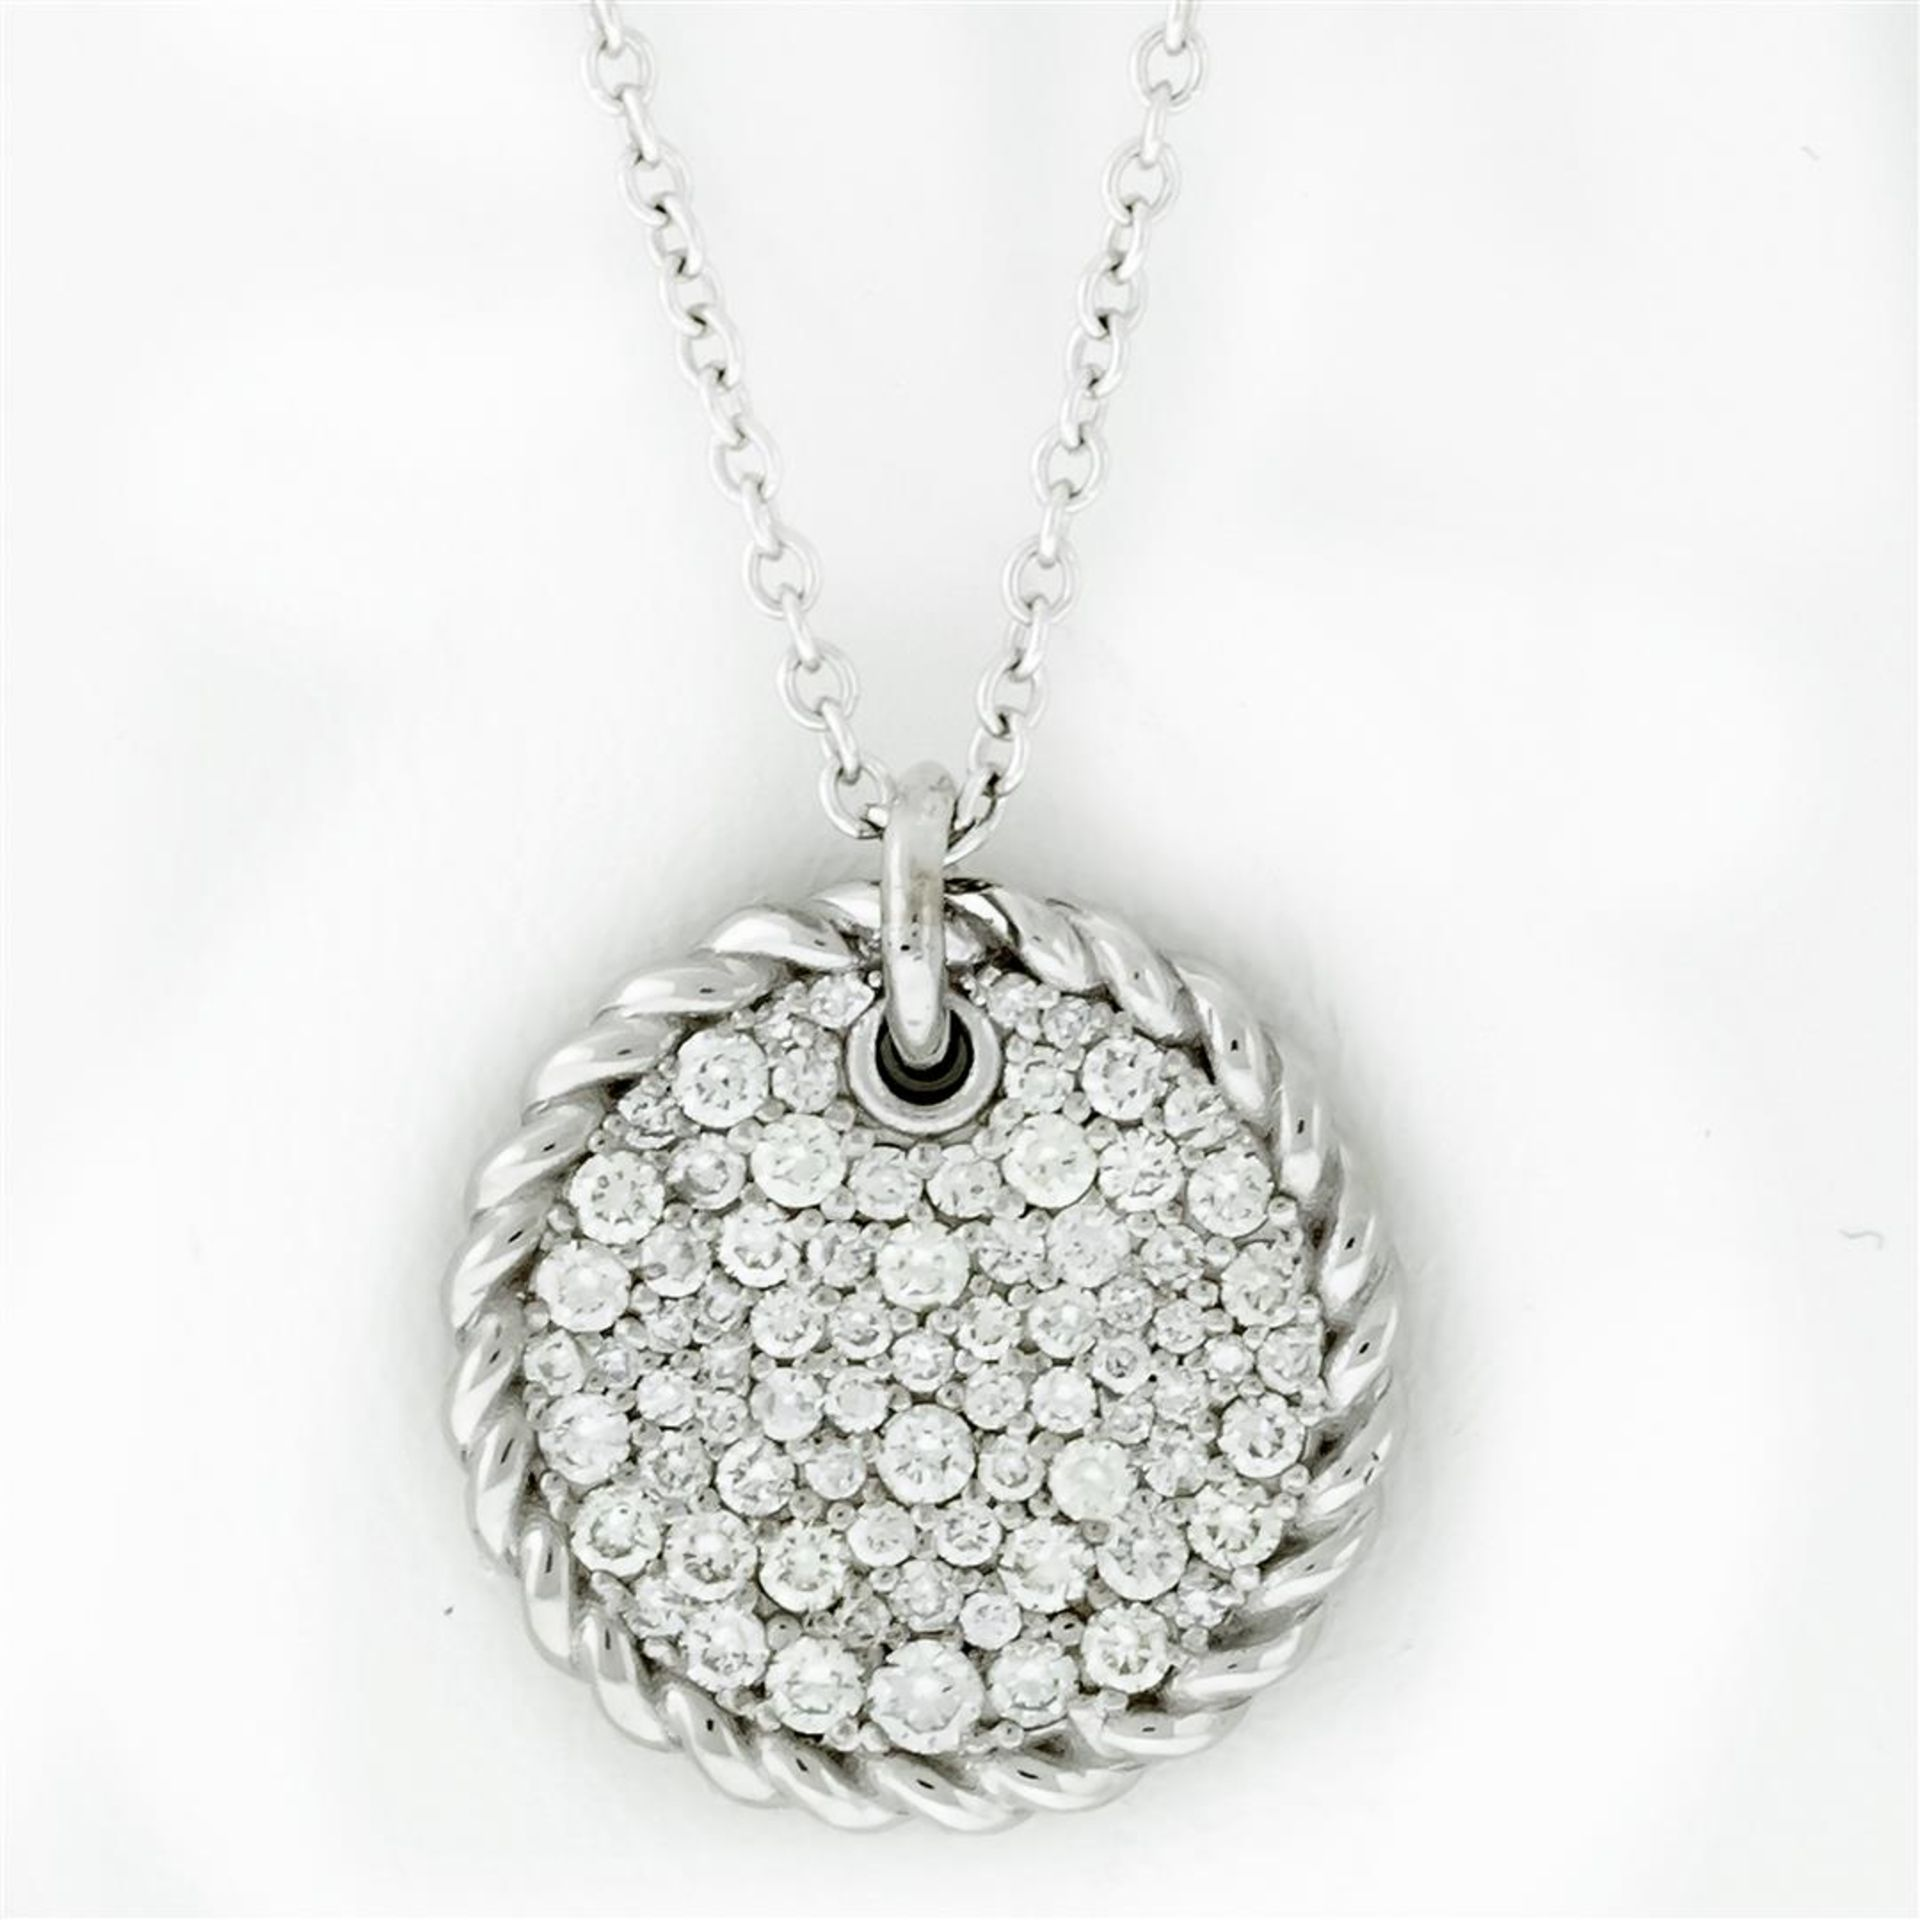 New 18k White Gold Diamond Cable Pendant with with 18K White Gold Chain - Image 2 of 7